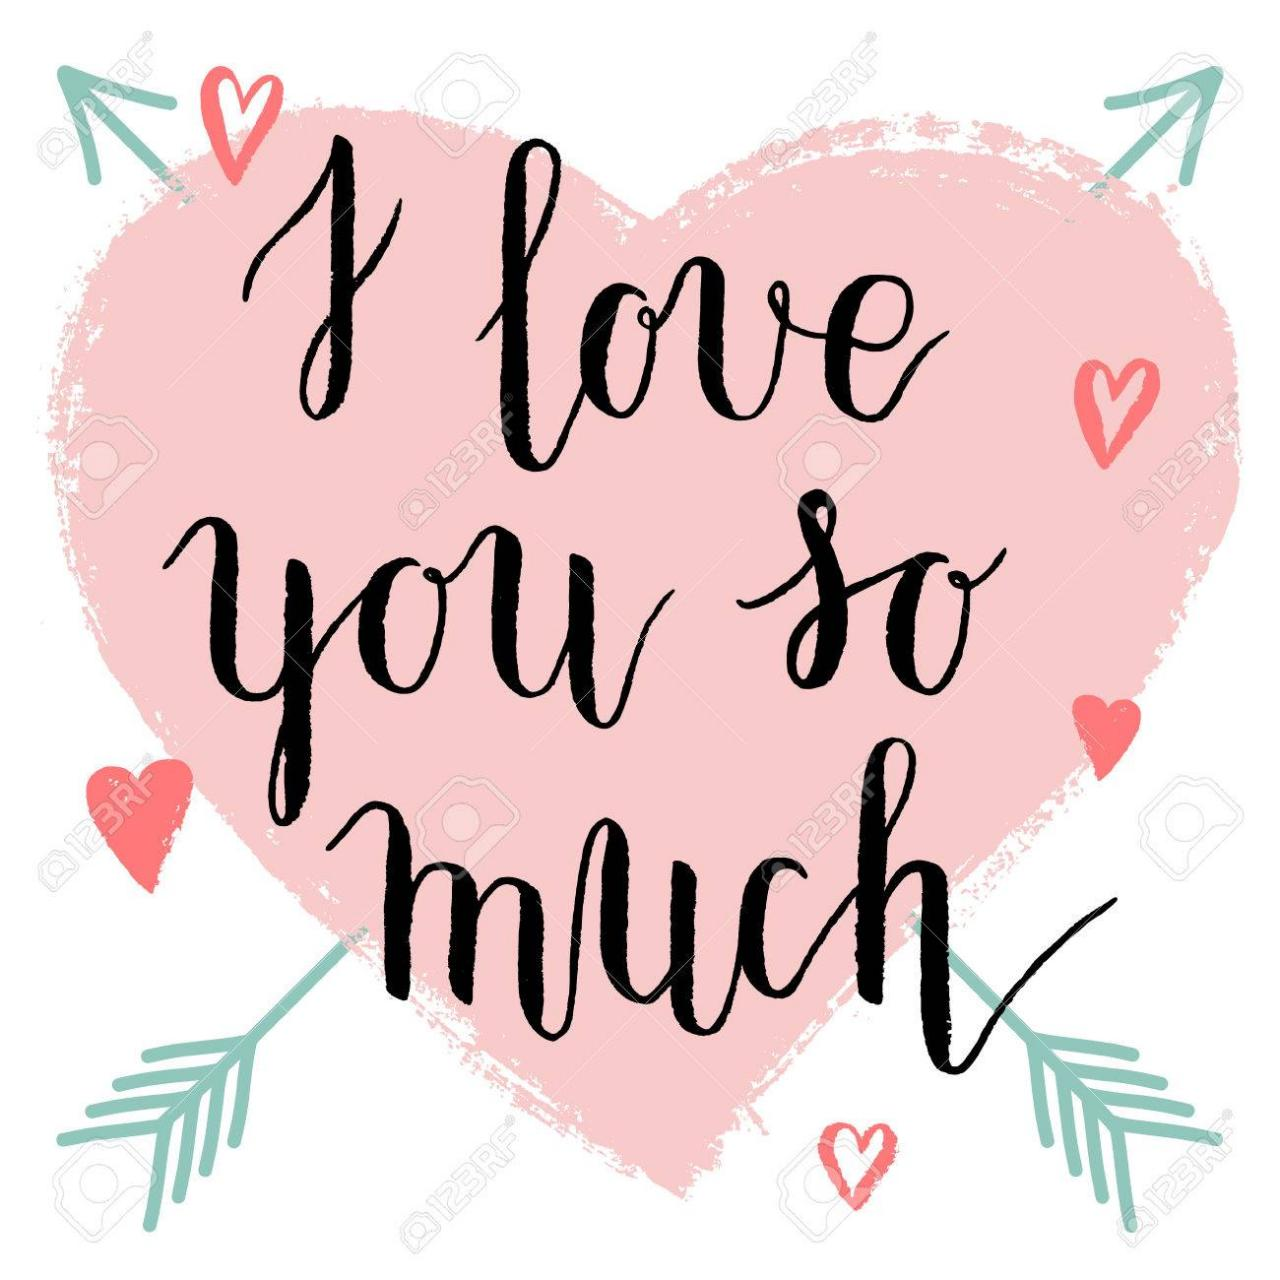 I Love You So Much Greeting Card Poster With Pink With Ink Hand Drawn Hearts